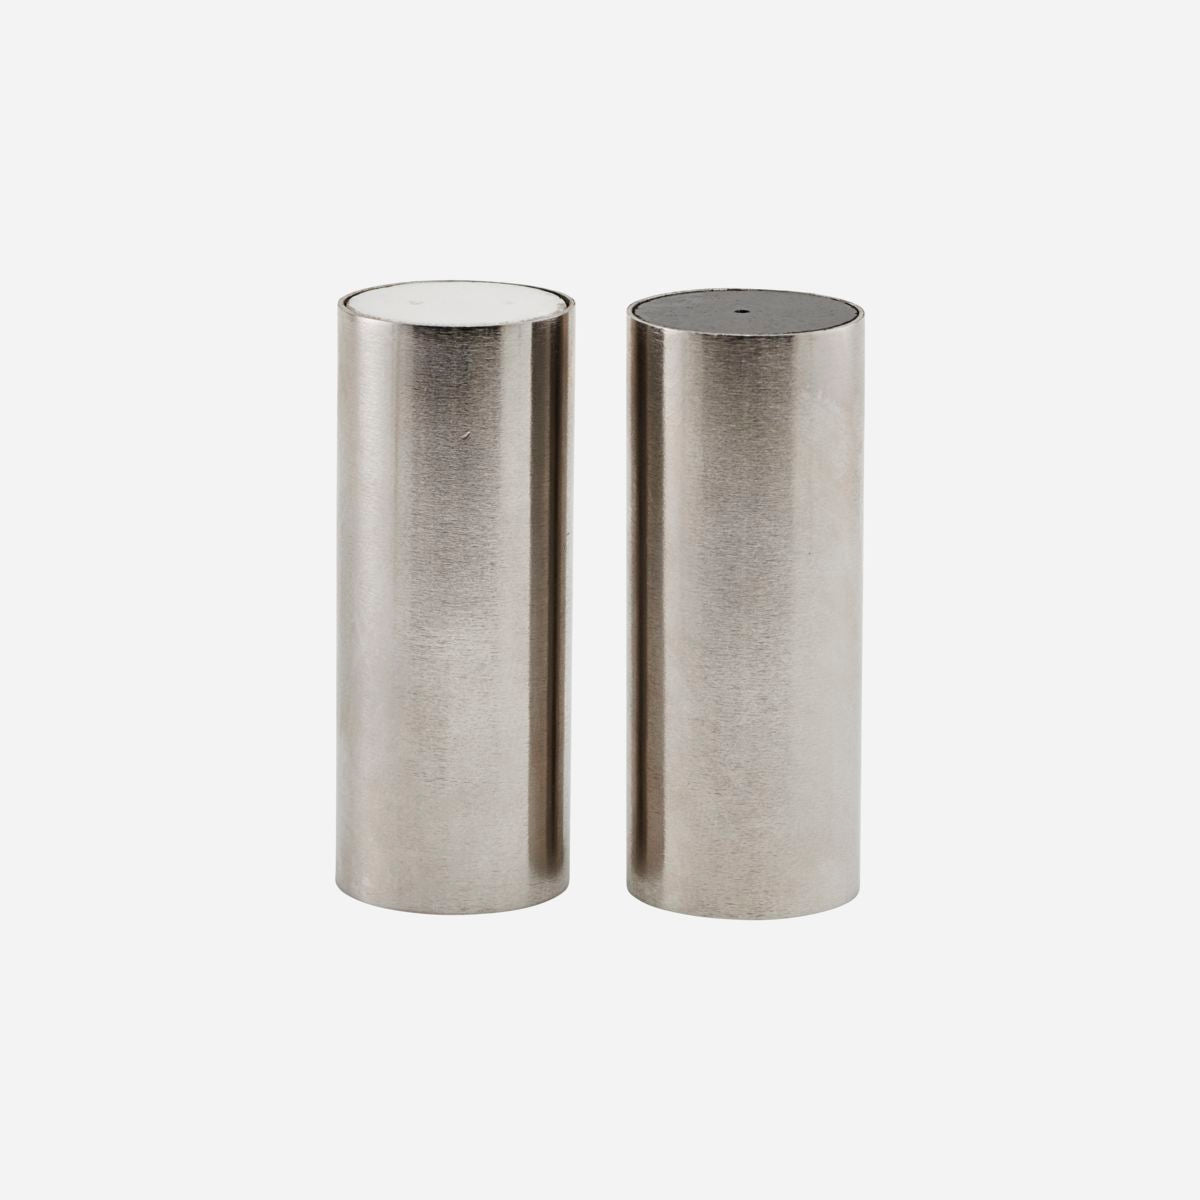 Image of   Salt and pepper, Tall, Brushed silver finish, Set of 2 pcs